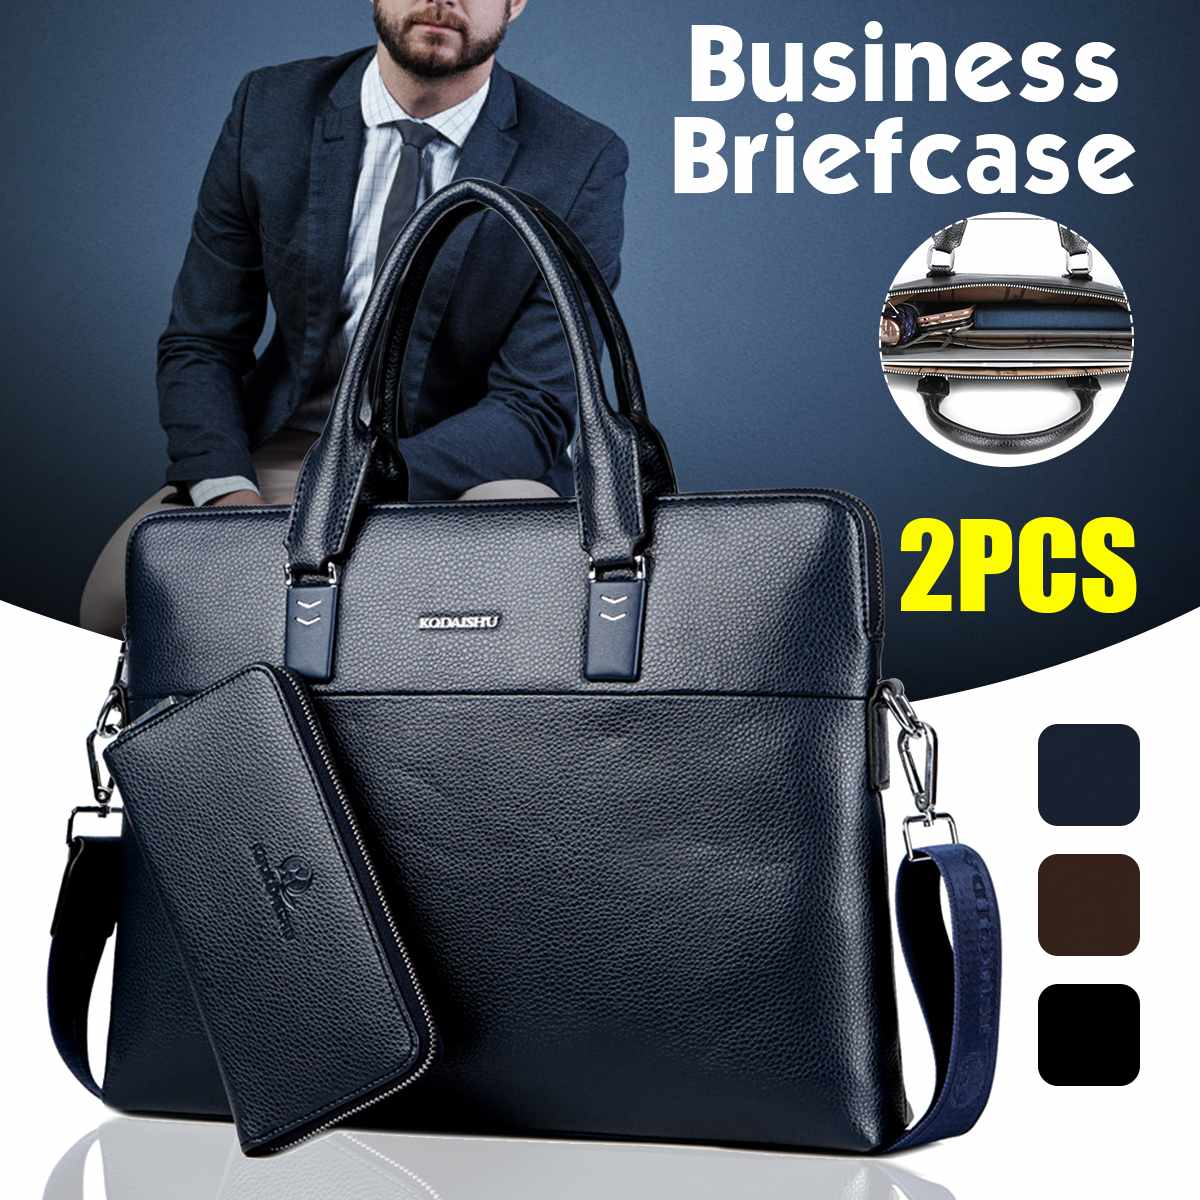 2PCS Fashion Men's Business PU Leather Briefcase Bag With Purse Handbag Laptop Shoulder Bags Messenger Bags Bolso Hombre Maleta